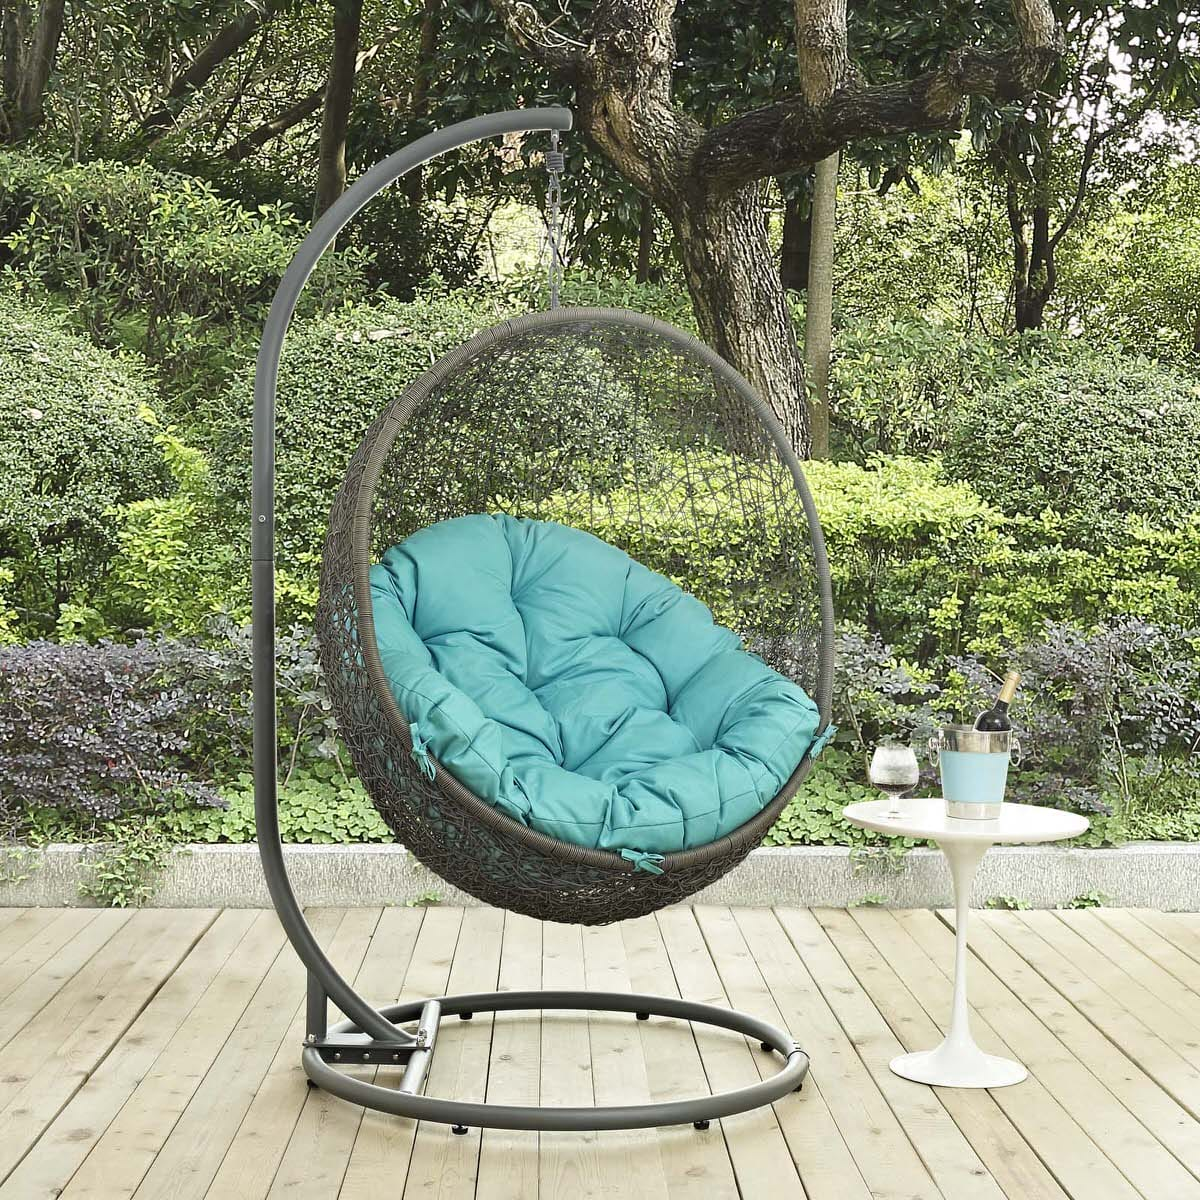 Hide Outdoor Patio Swing Chair With Stand Gray Turquoise By Modern Living